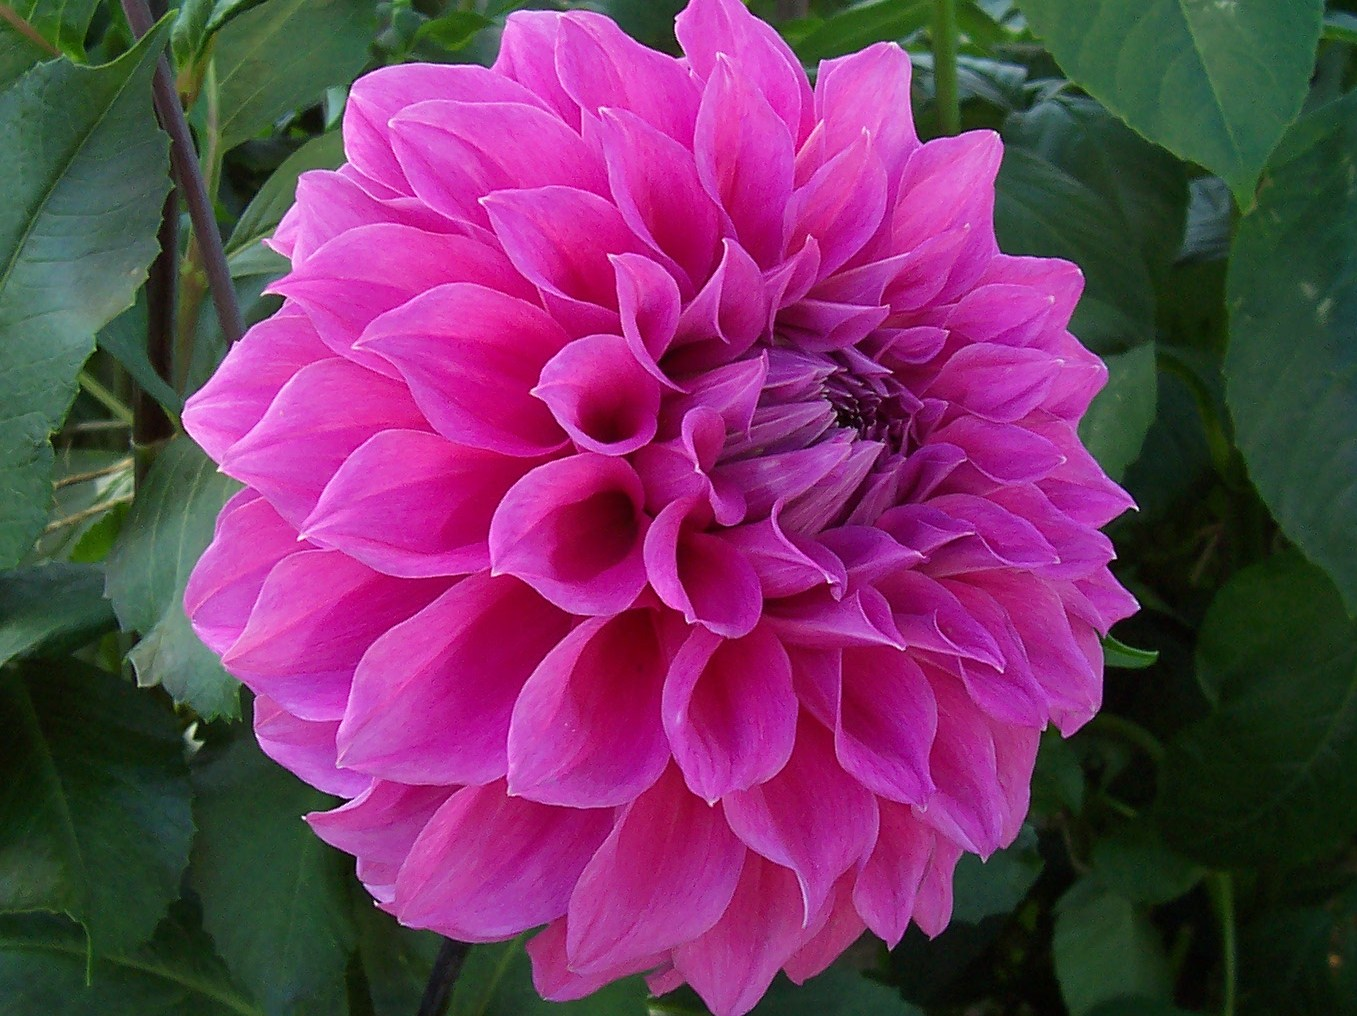 Dahlia Flower Flowers For Flower Lovers Dahlia Flowers Pictures